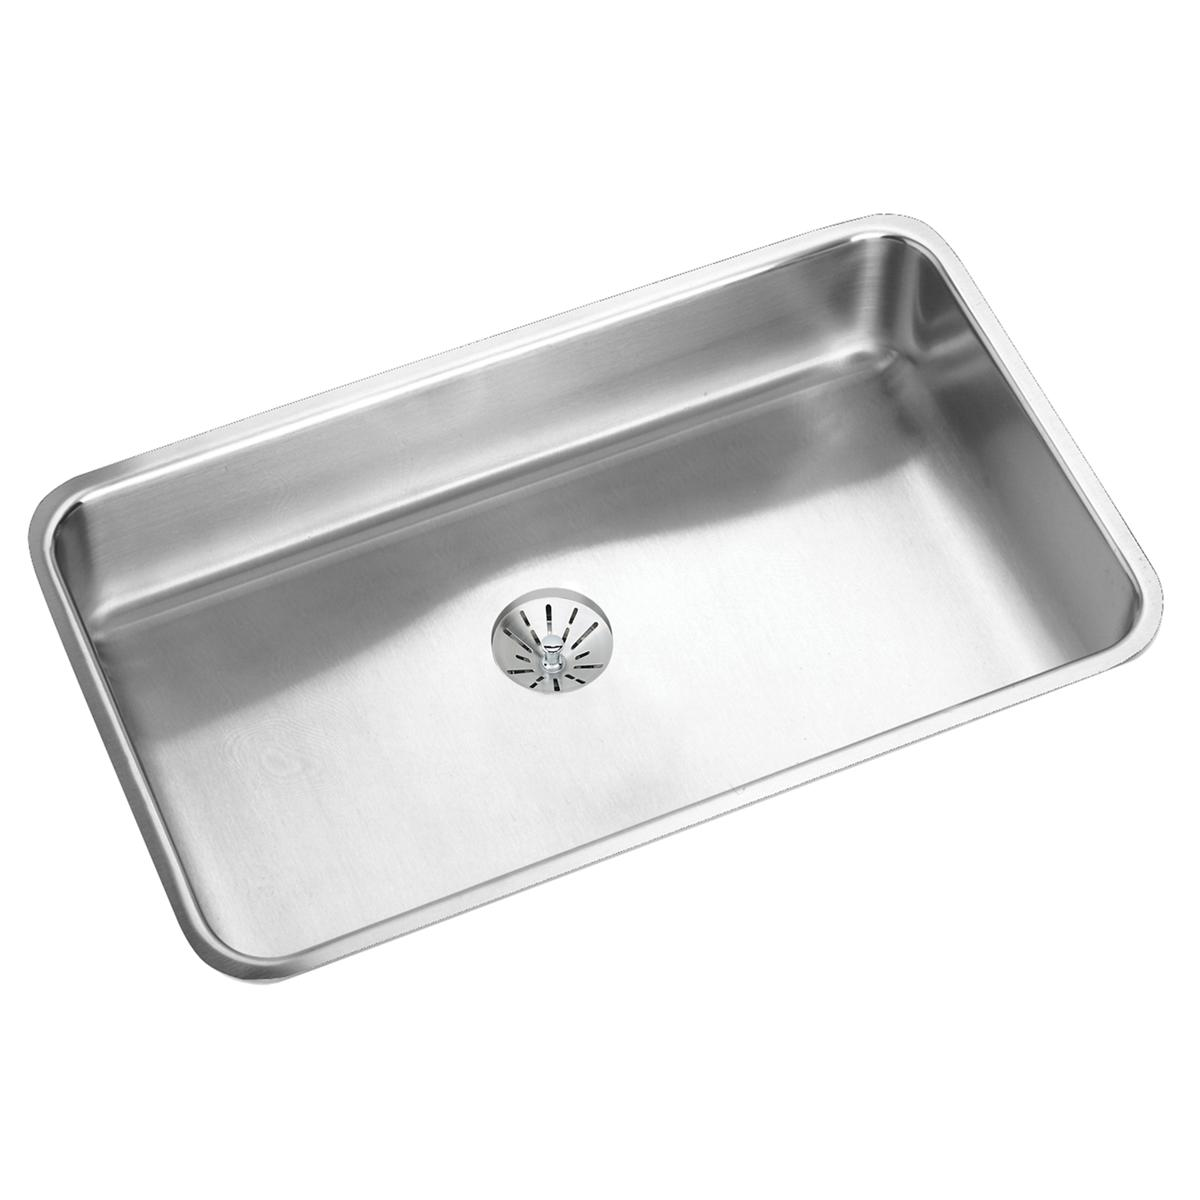 "Elkay Lustertone Classic Stainless Steel, 30-1/2"" X 18-1/2"" X 5-3/8"", Single Bowl Undermount ADA Sink With Perfect Drain"